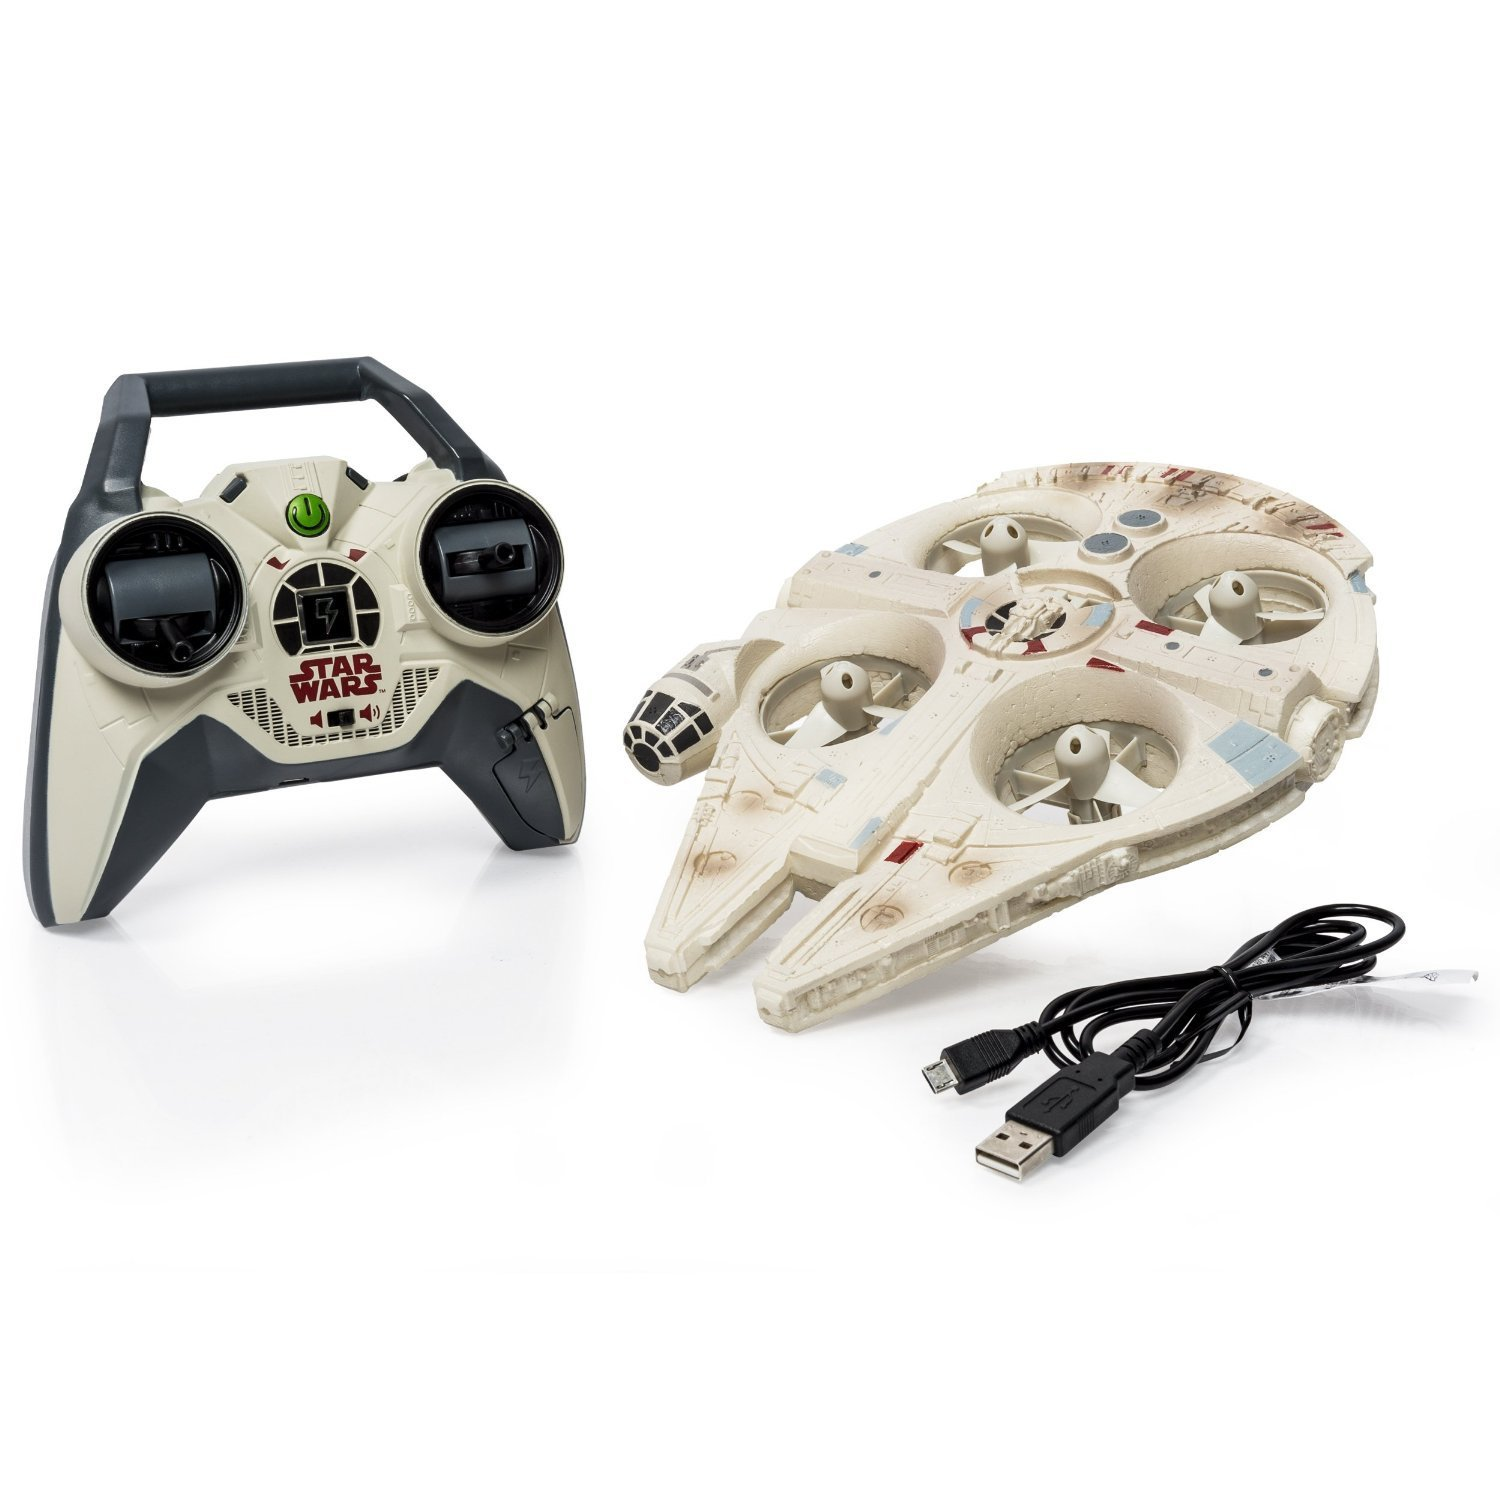 Air Hogs Star Wars Ultimate Millennium Falcon Drone QUAD